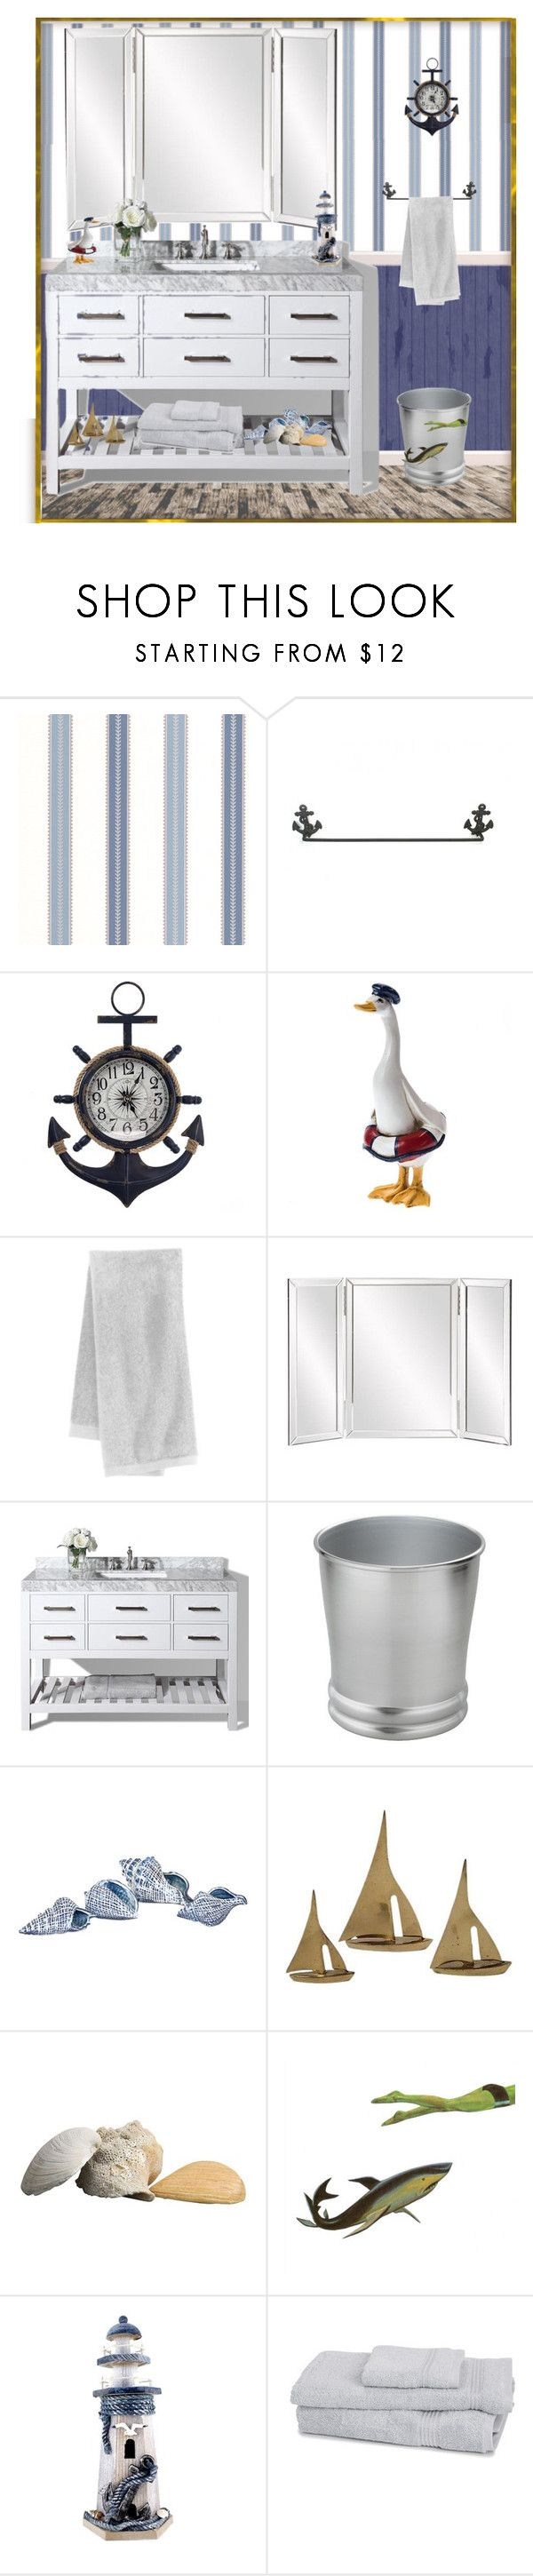 Threshold home decor shop for threshold home decor on polyvore -  Nautical Style Bathroom By Mindy 2 1 Liked On Polyvore Featuring